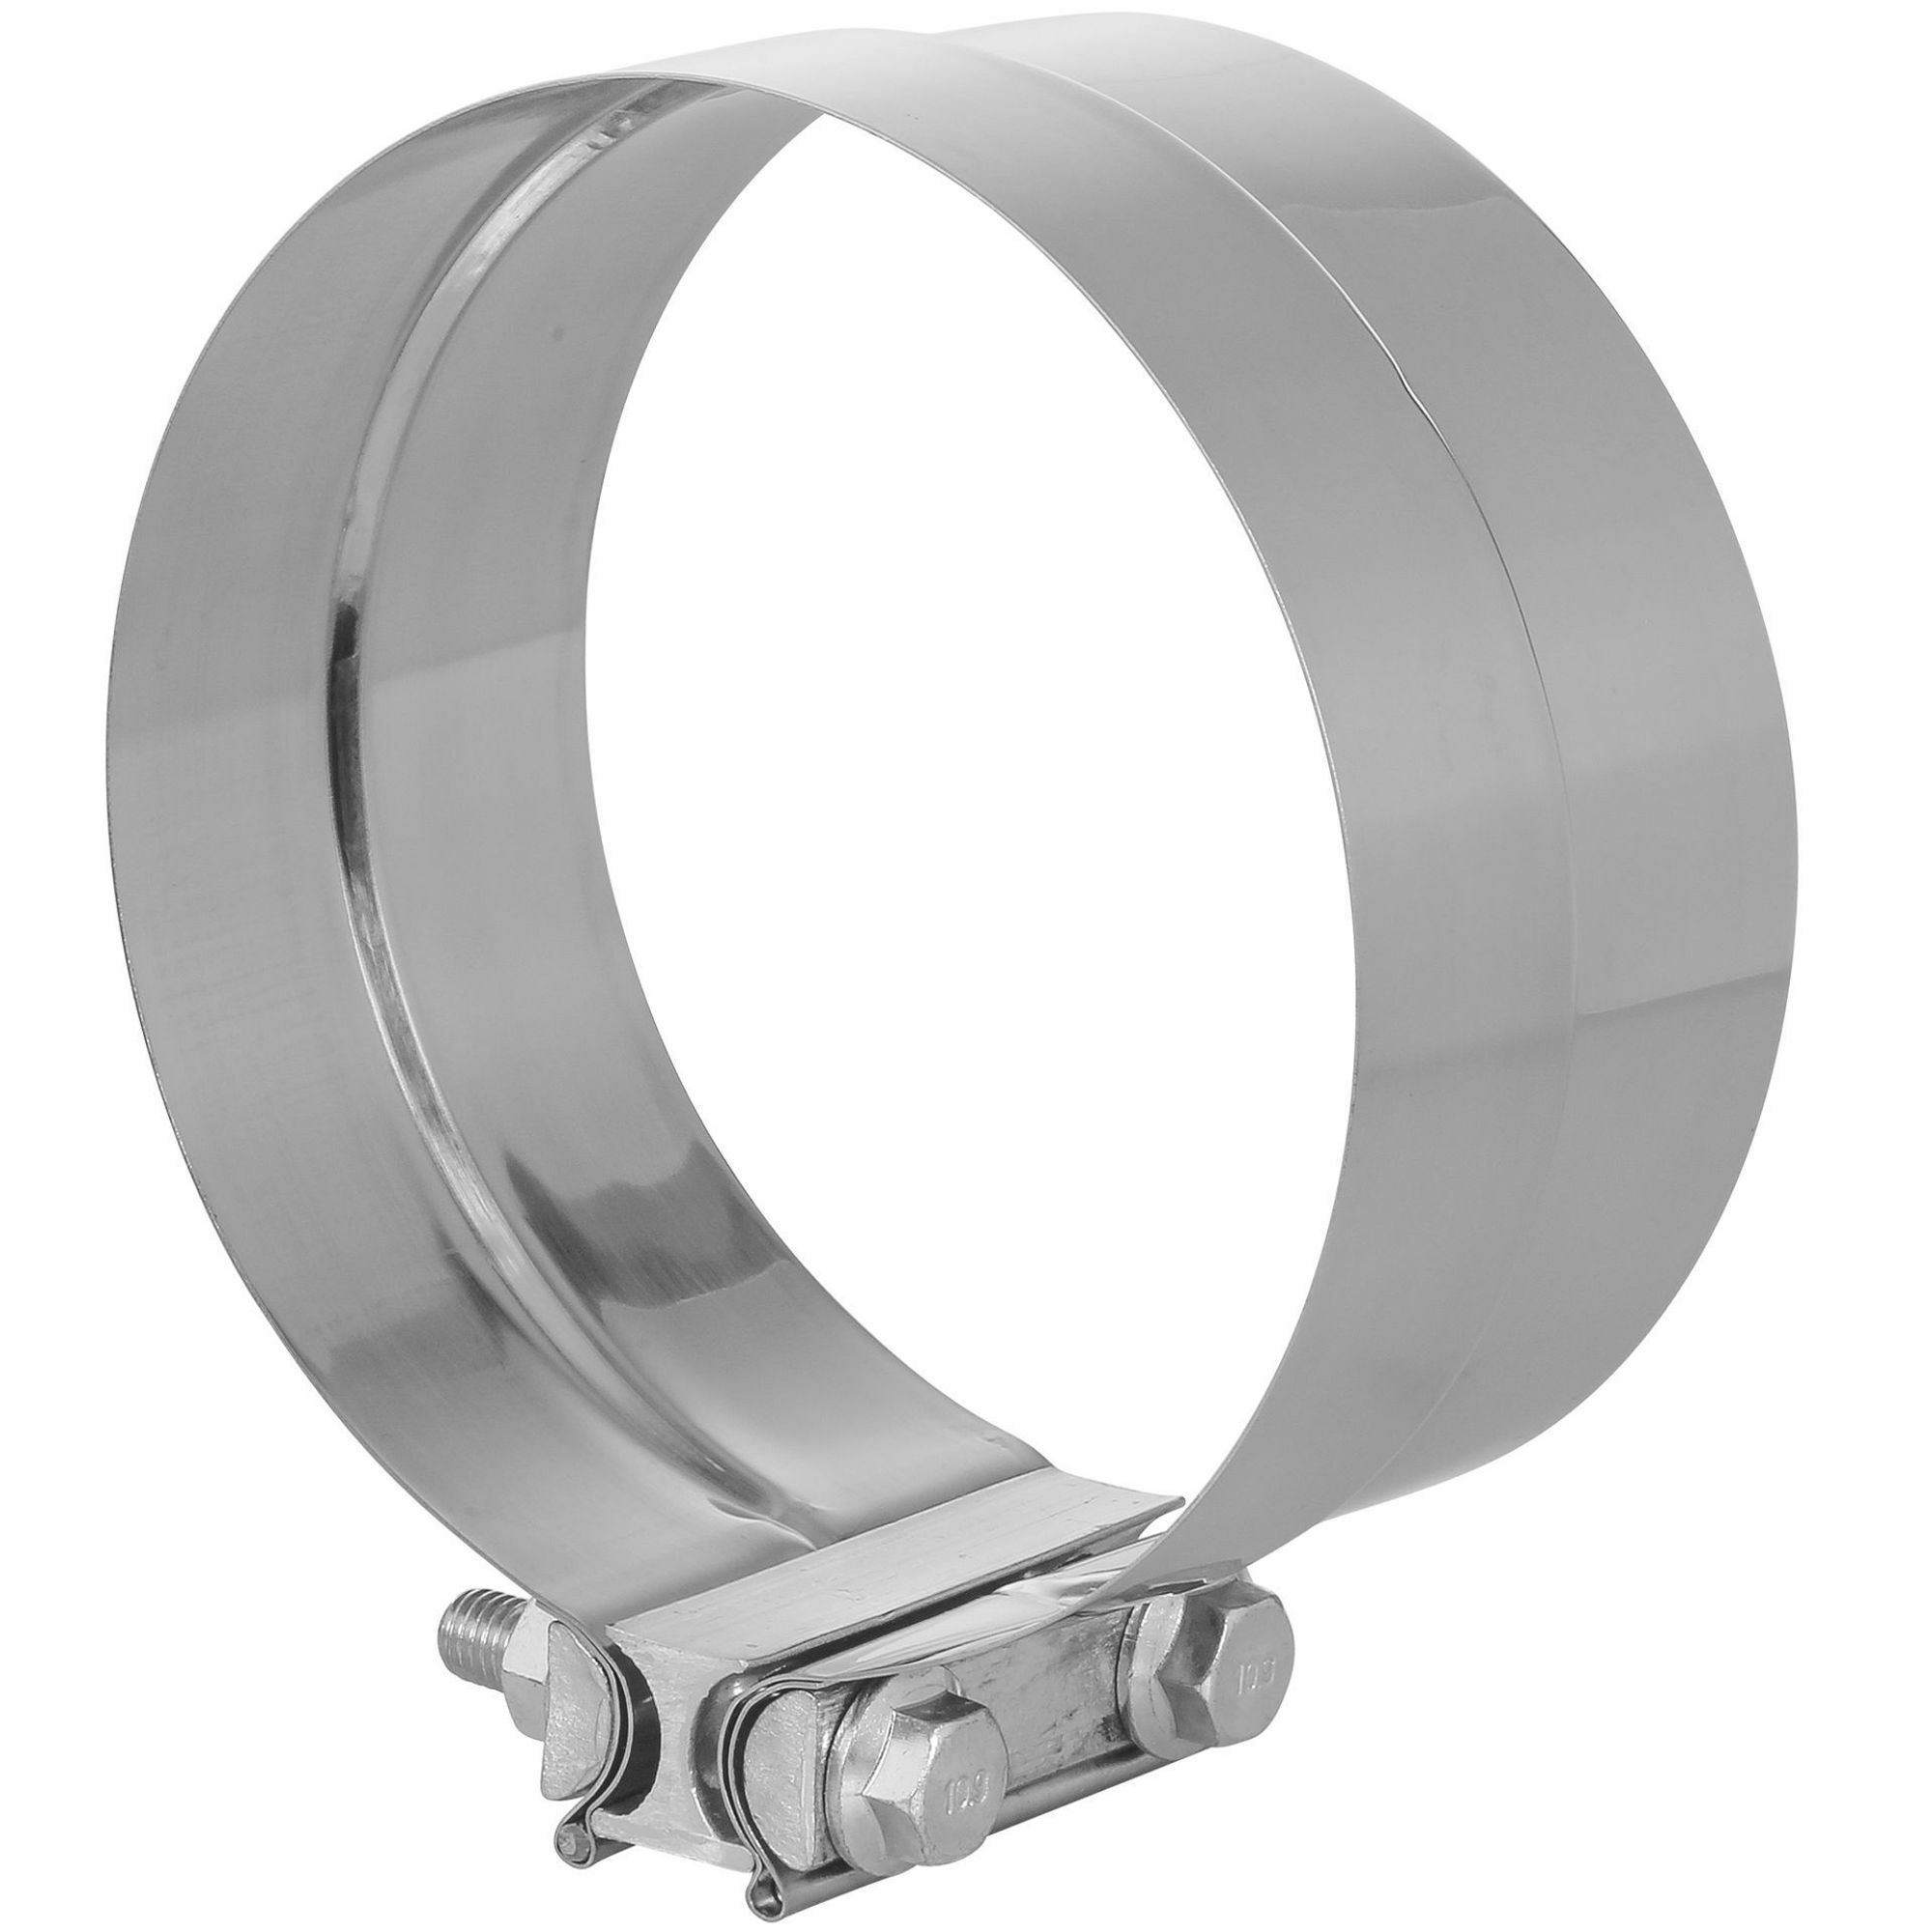 TOTALFLOW TF-J65 Lap Joint Exhaust Muffler Clamp Band | 6 Inch